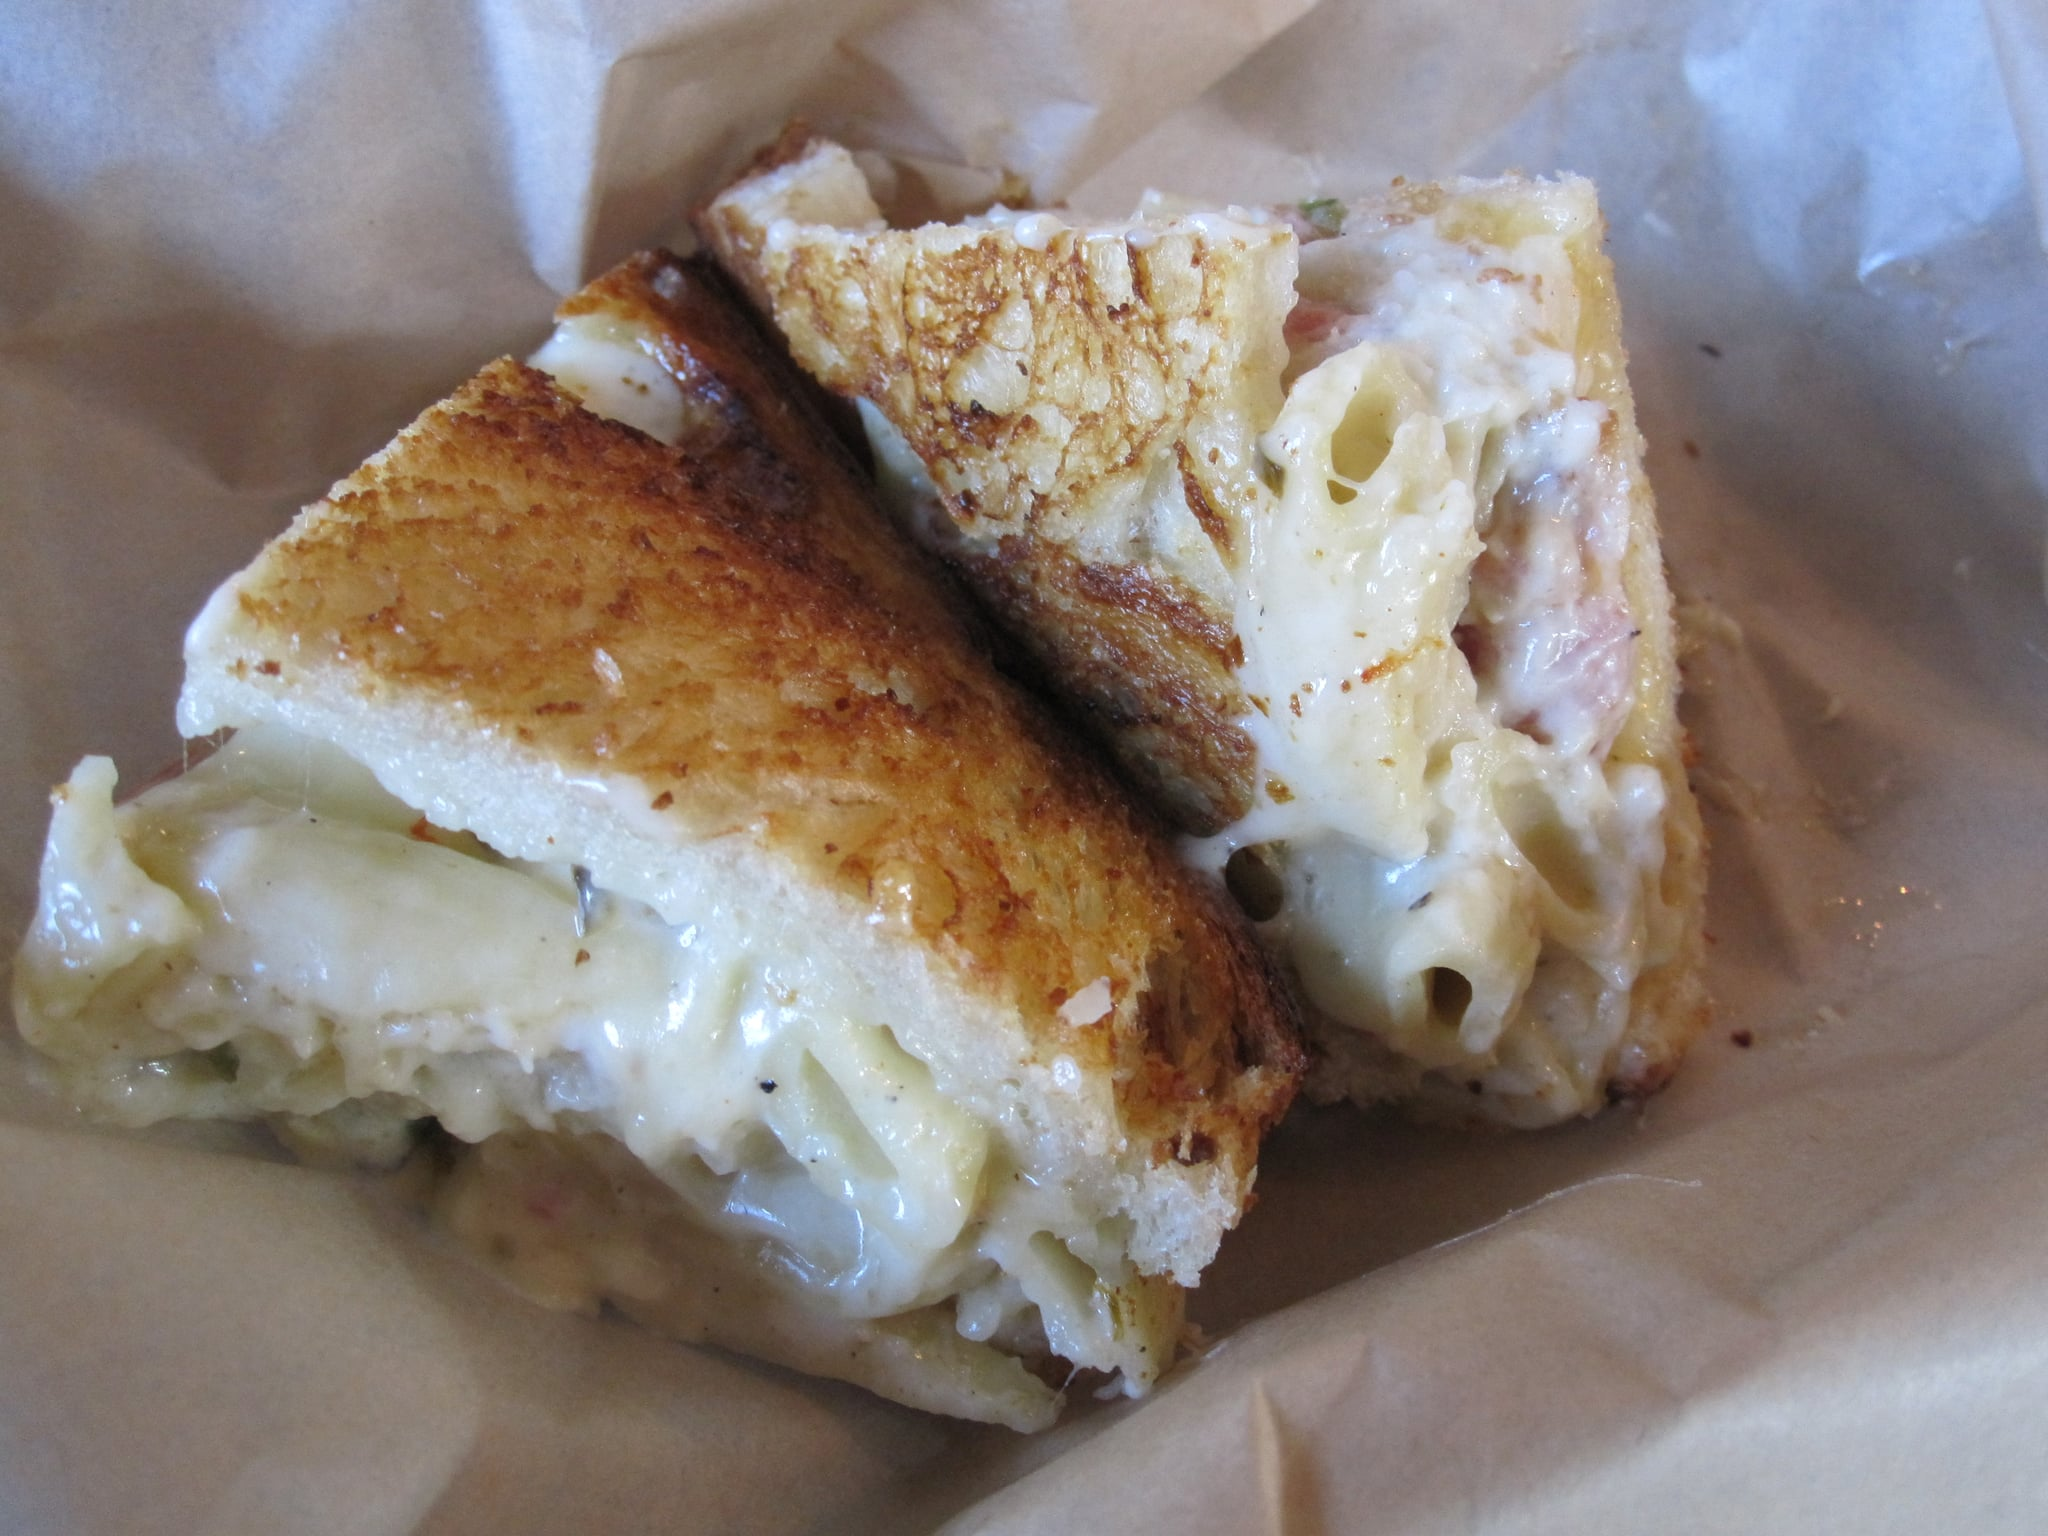 The grilled macaroni and cheese sandwich.